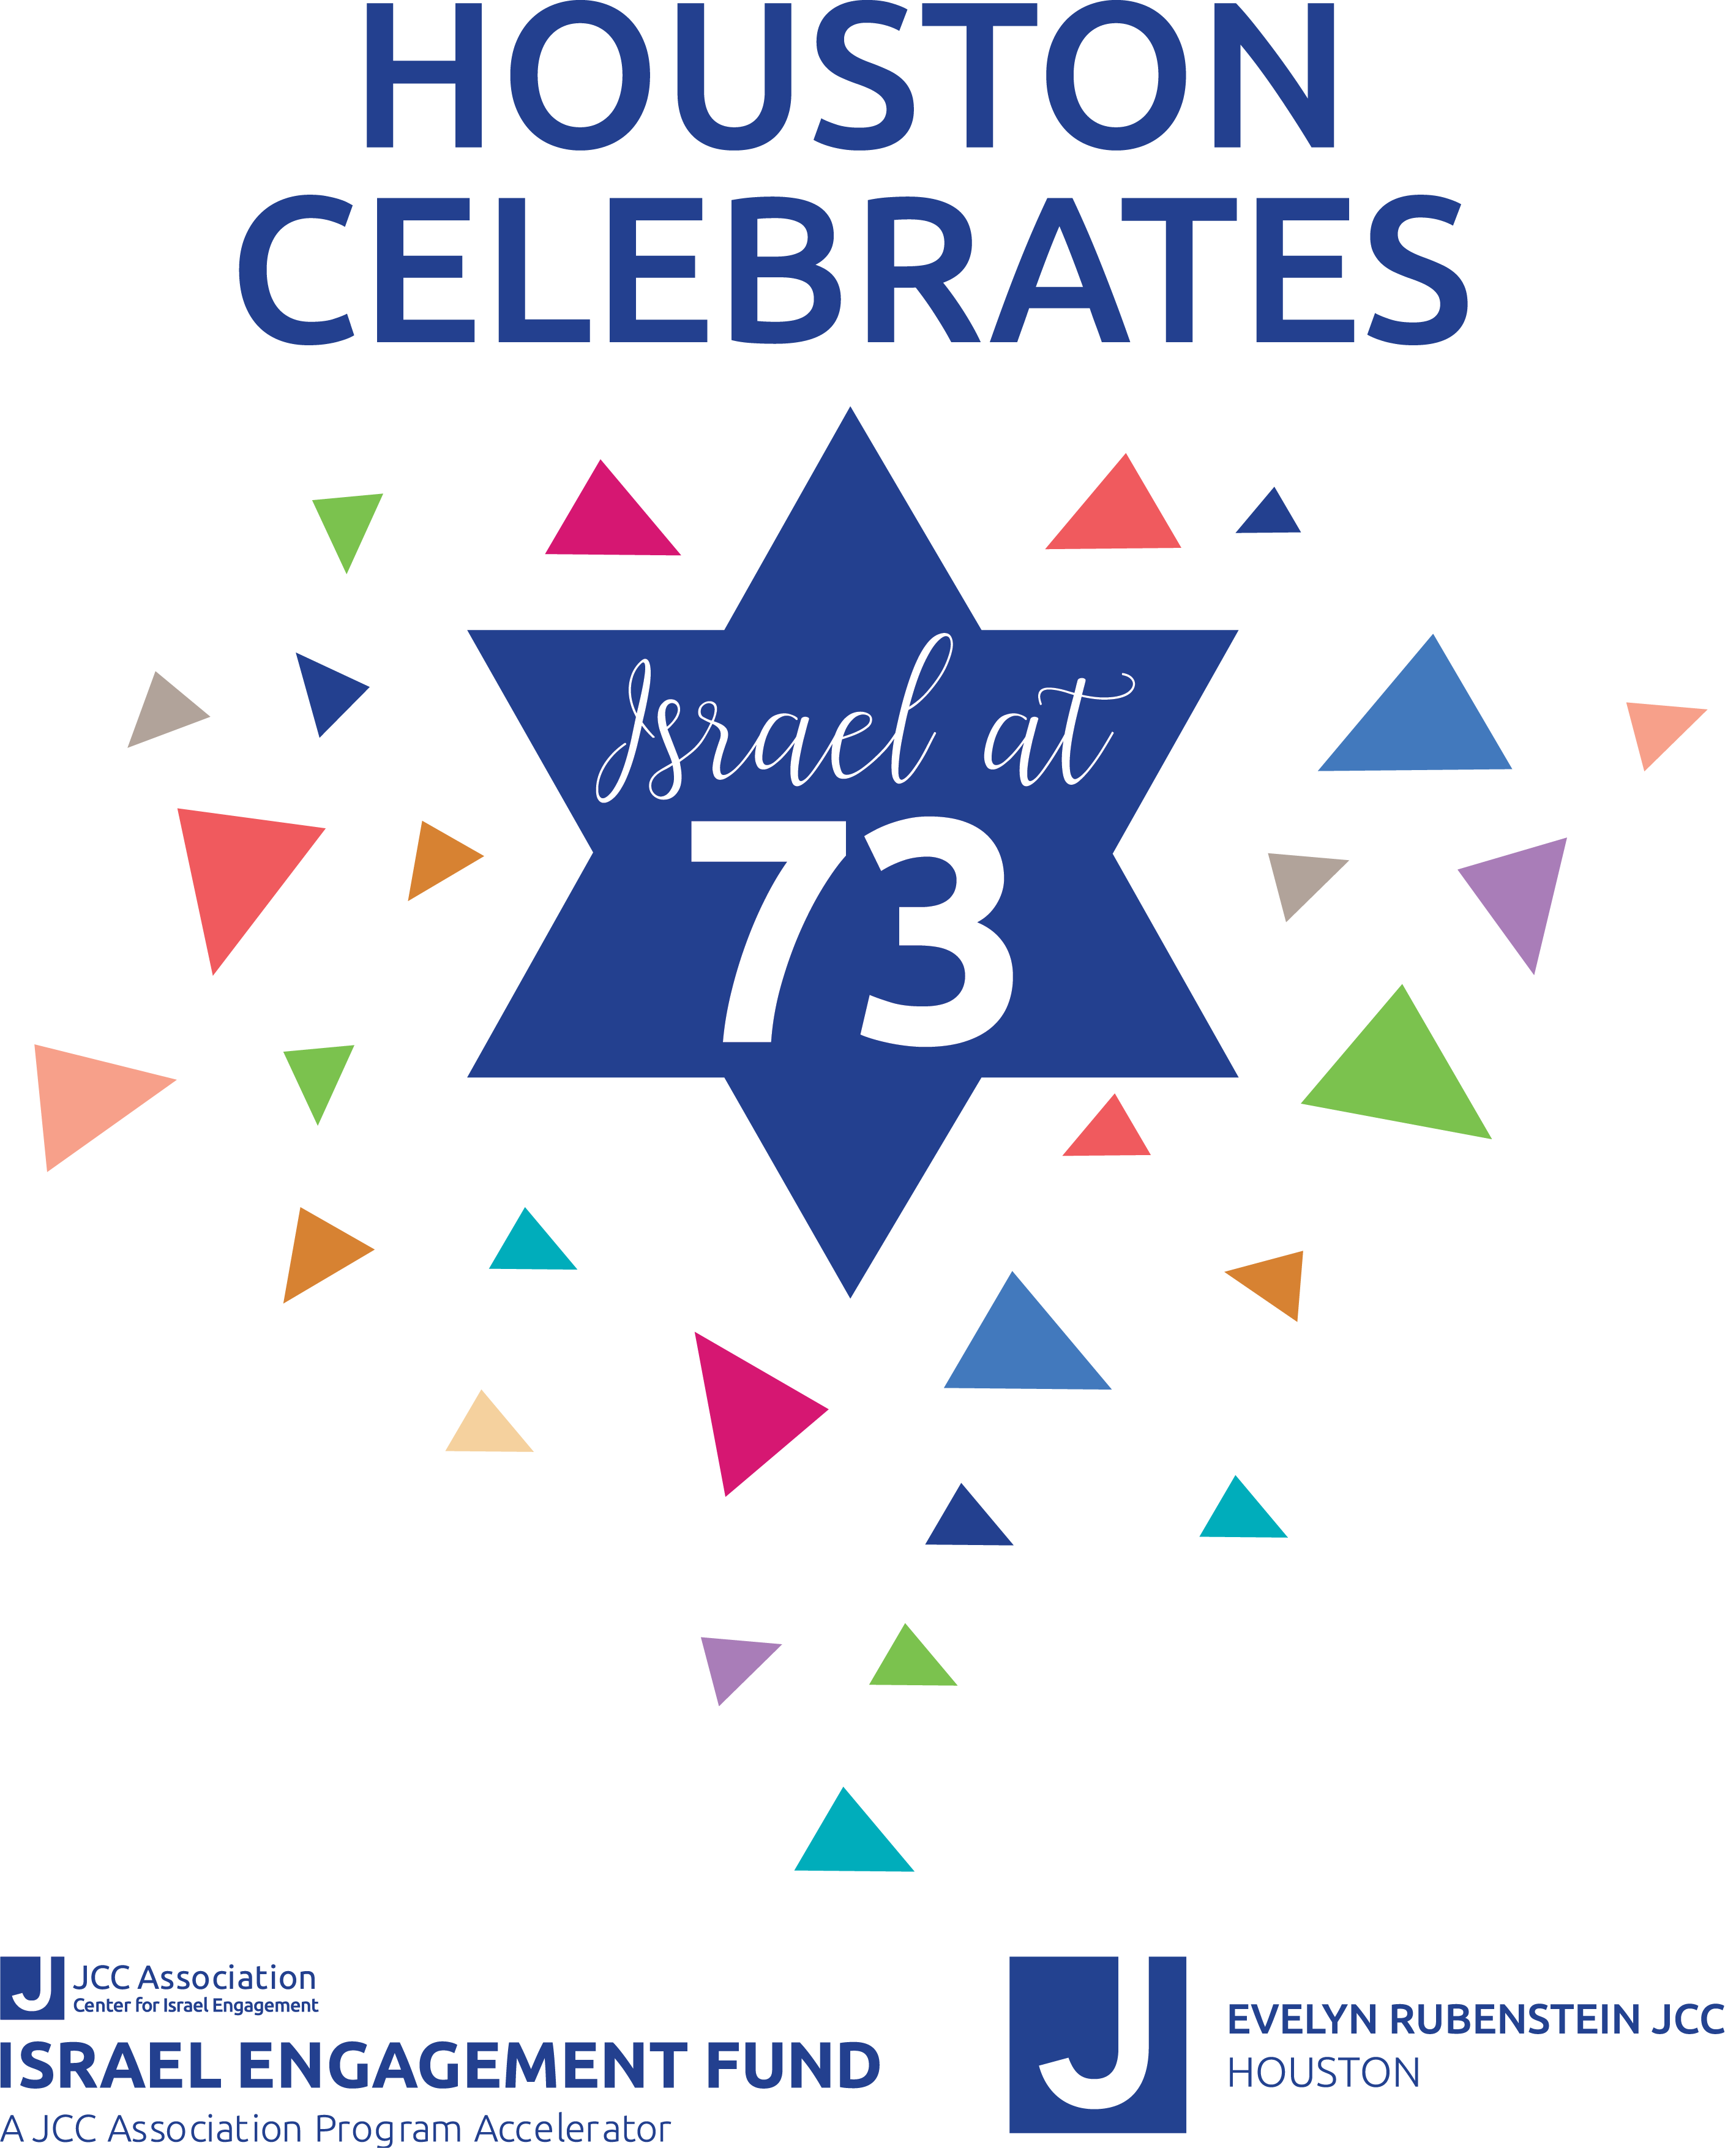 Houston yom haatzmaut celebration